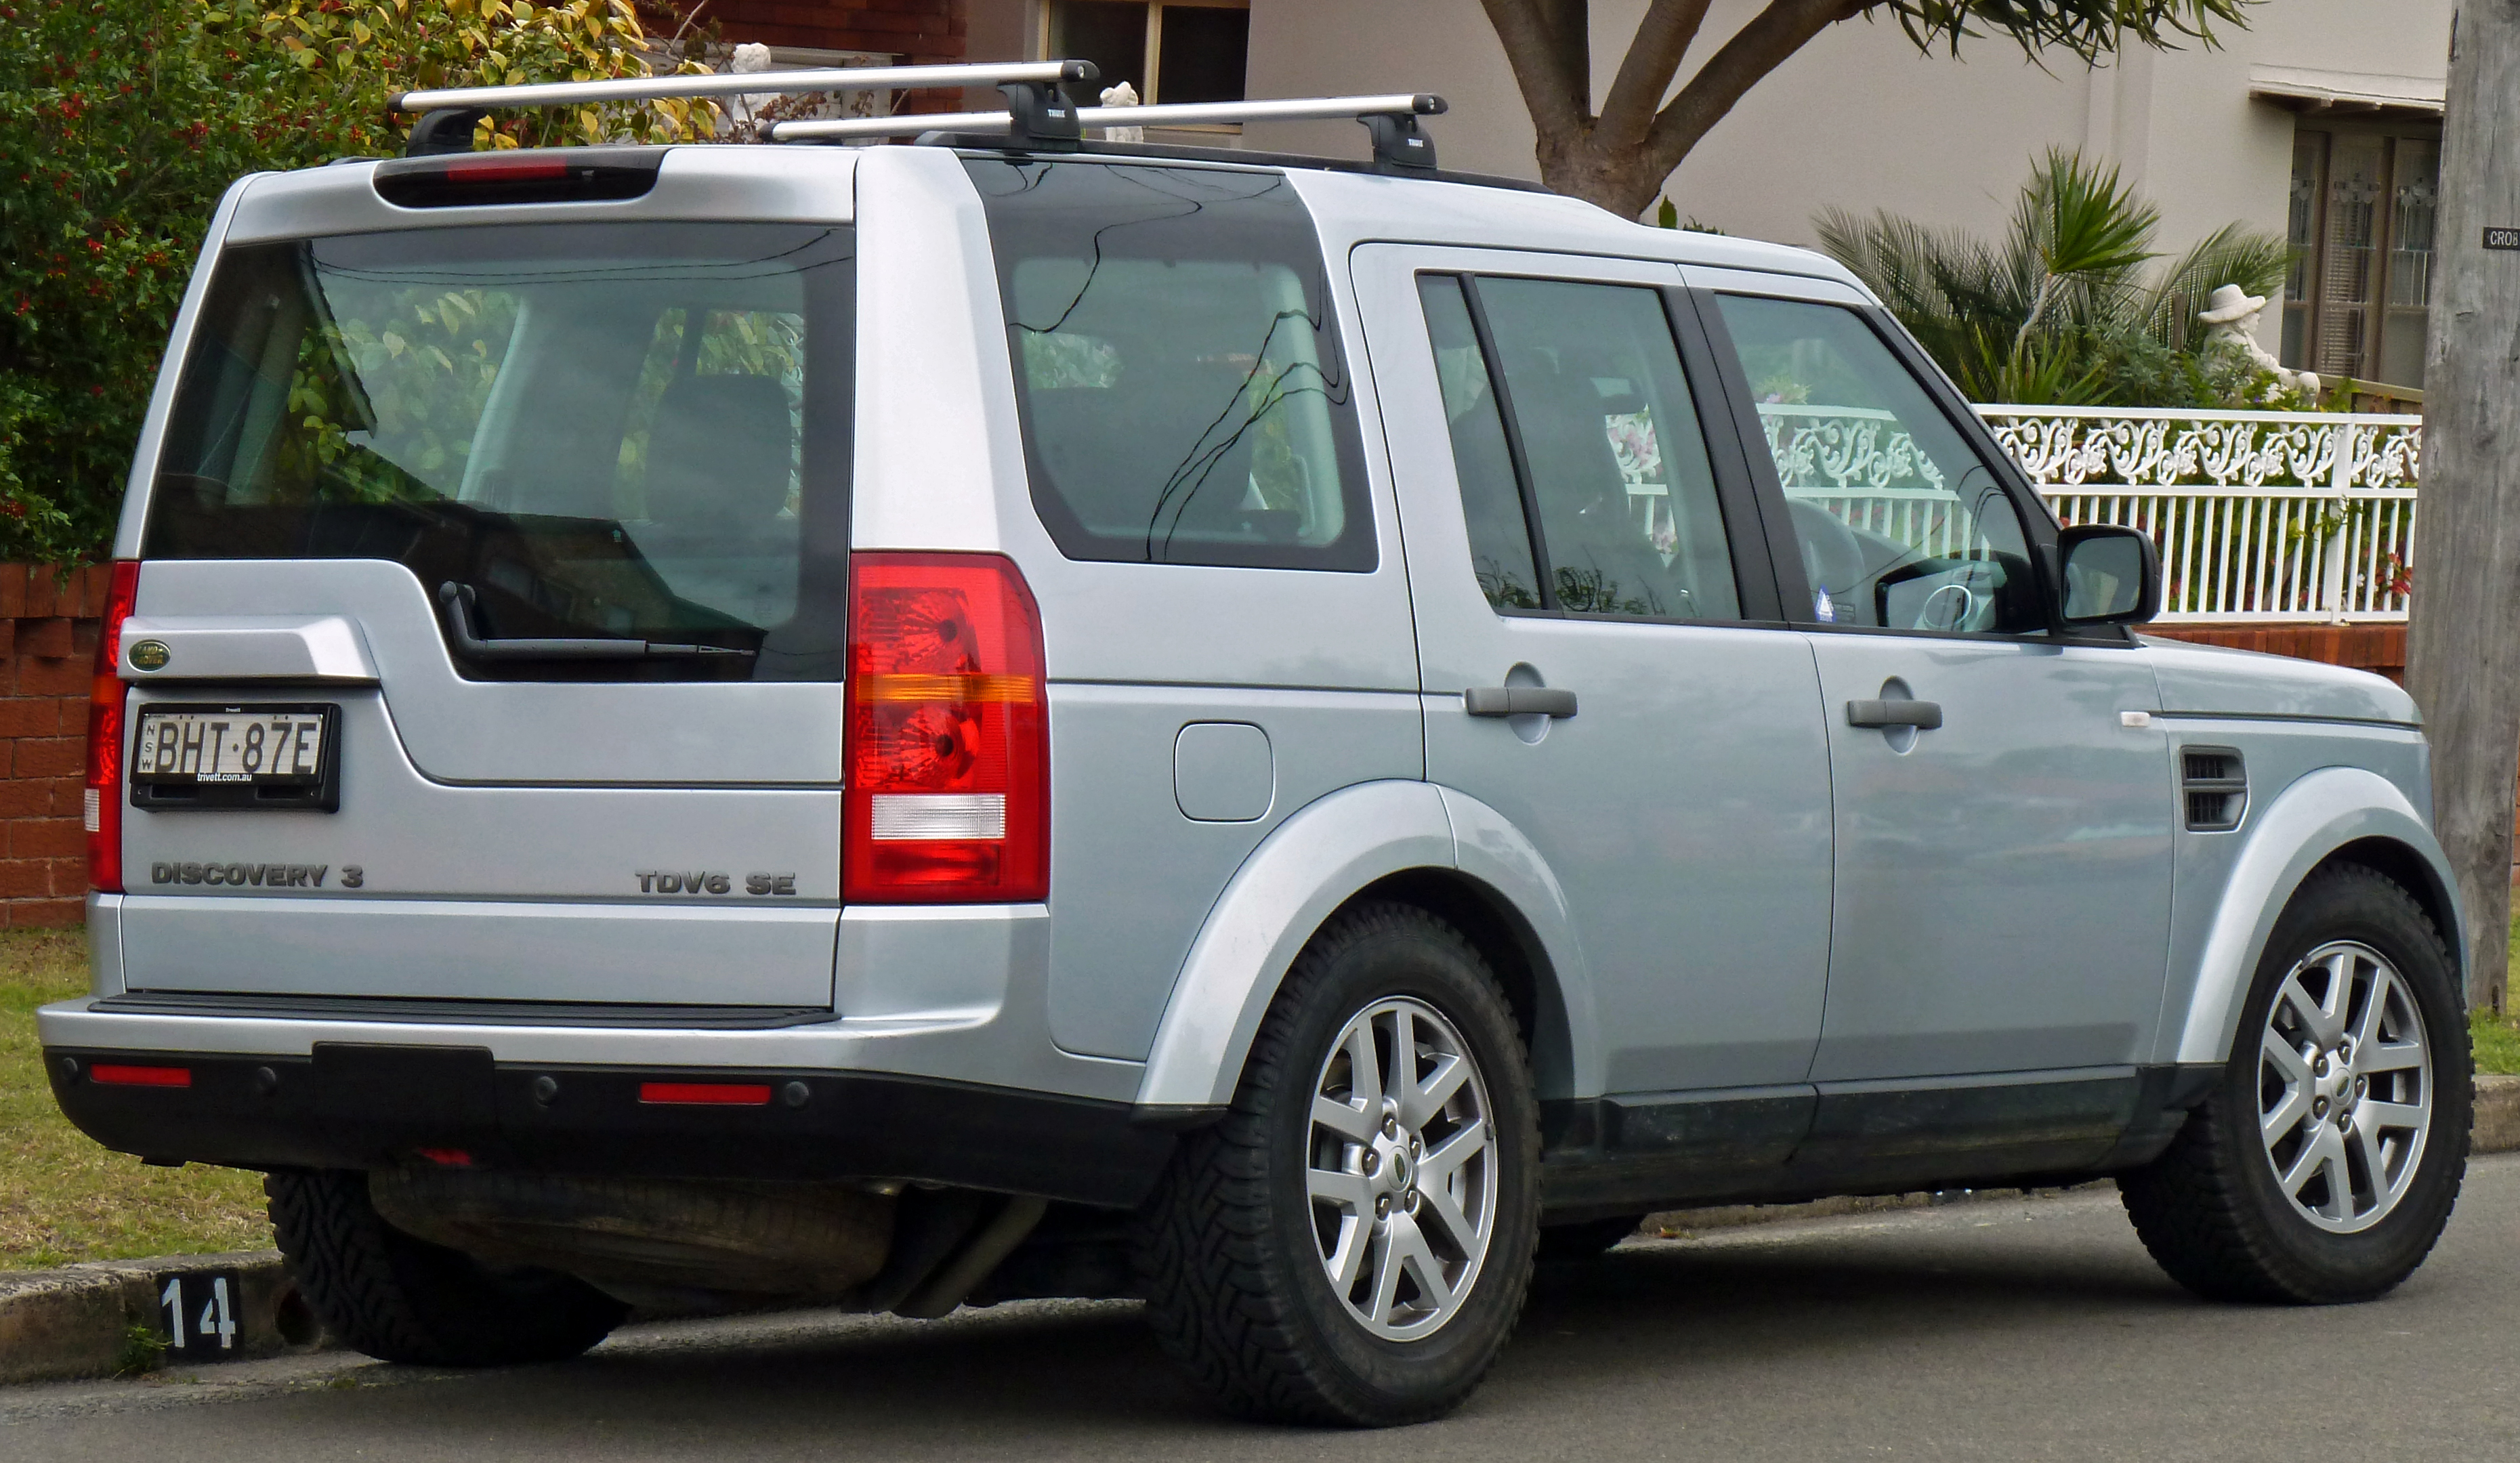 File 2008 2009 Land Rover Discovery 3 MY09 TDV6 SE wagon 2010